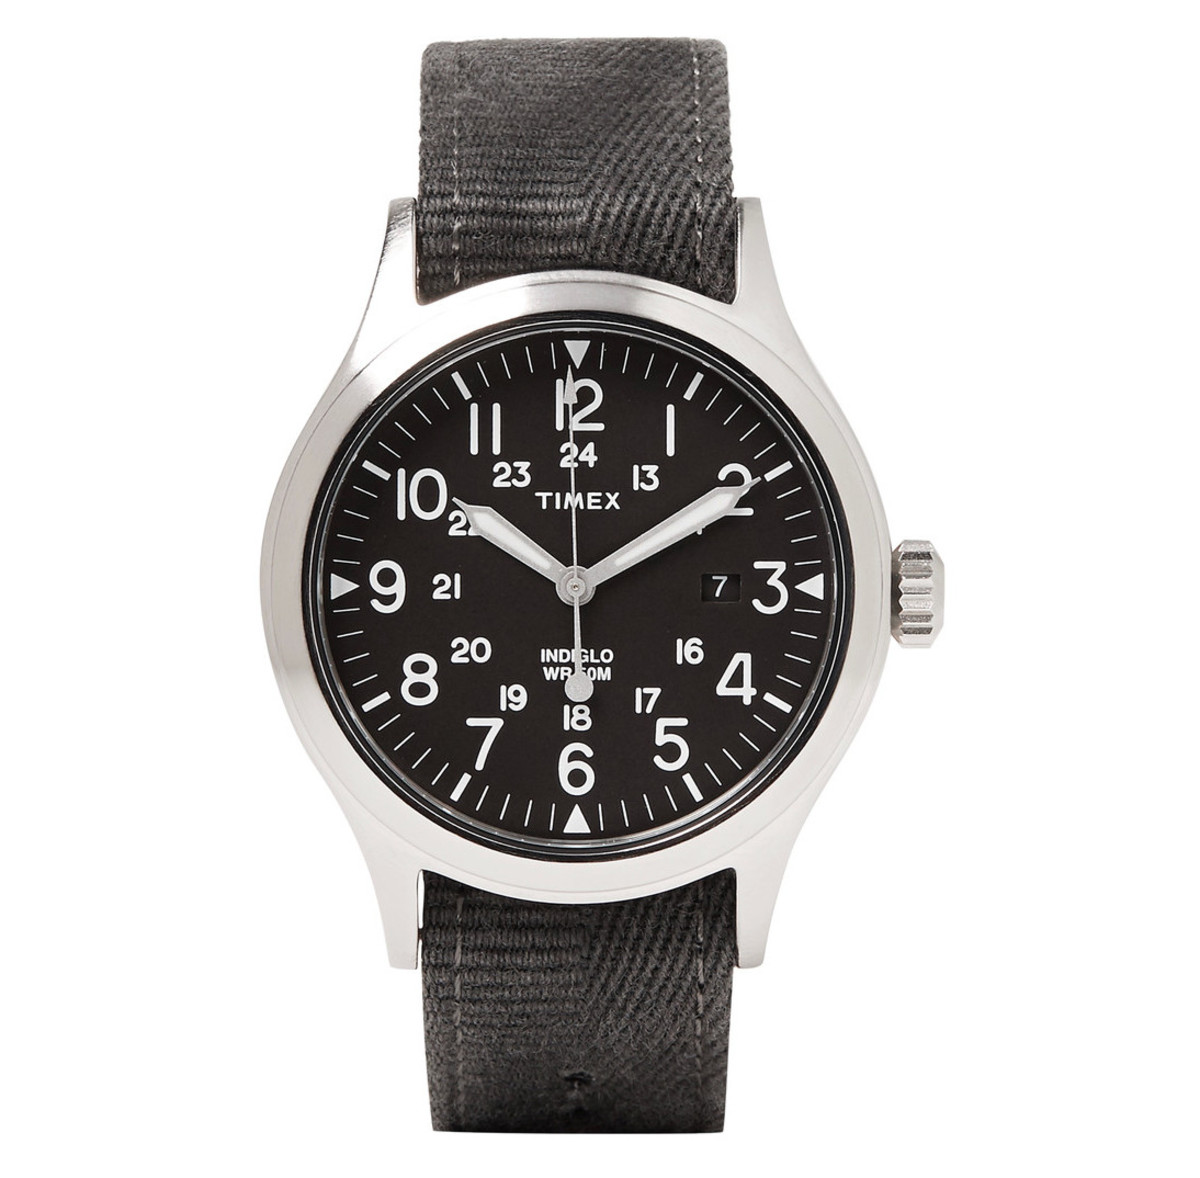 timex-scout-brook-watch.jpg